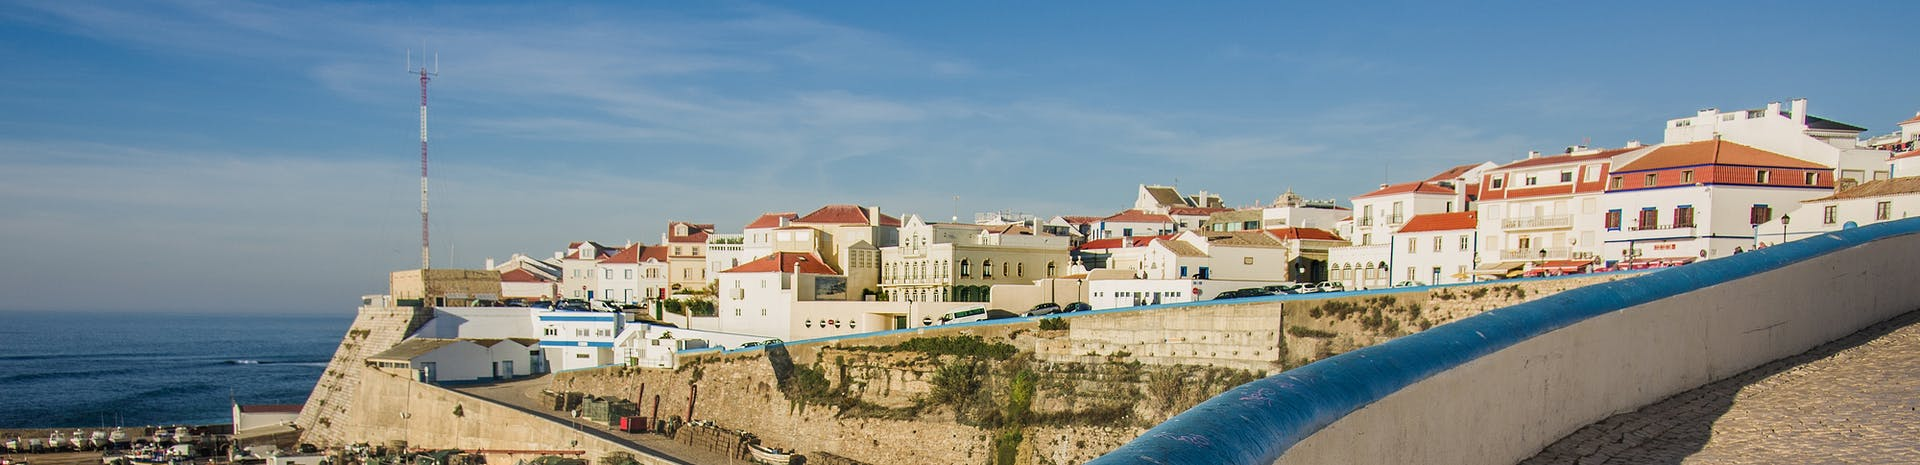 Picture of Ericeira